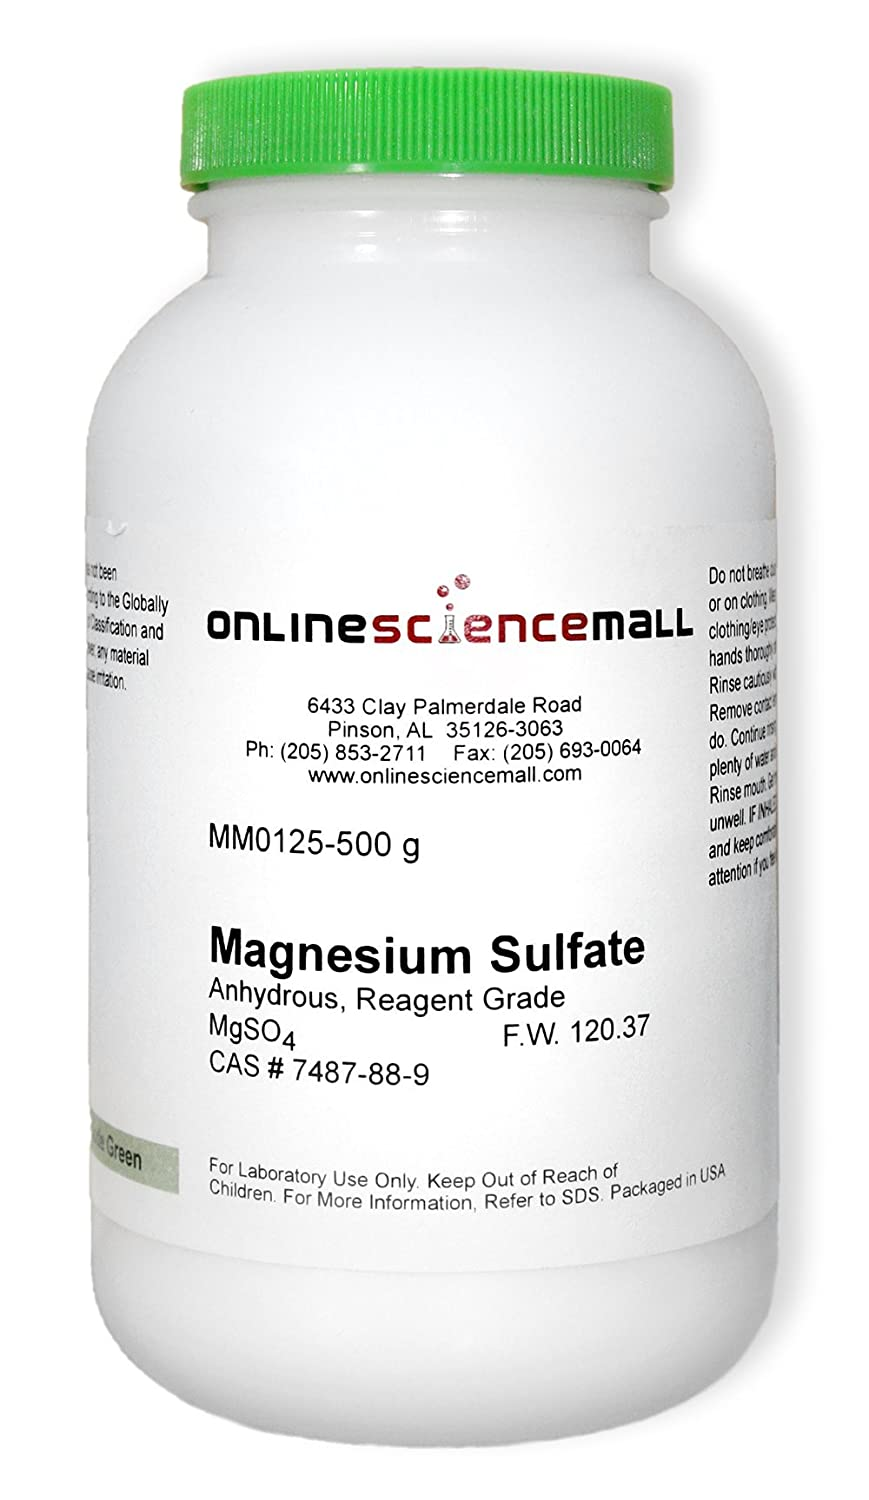 Magnesium Sulfate, Anhydrous, 500g - Reagent Grade Chemical Reagent: Amazon.com: Industrial & Scientific